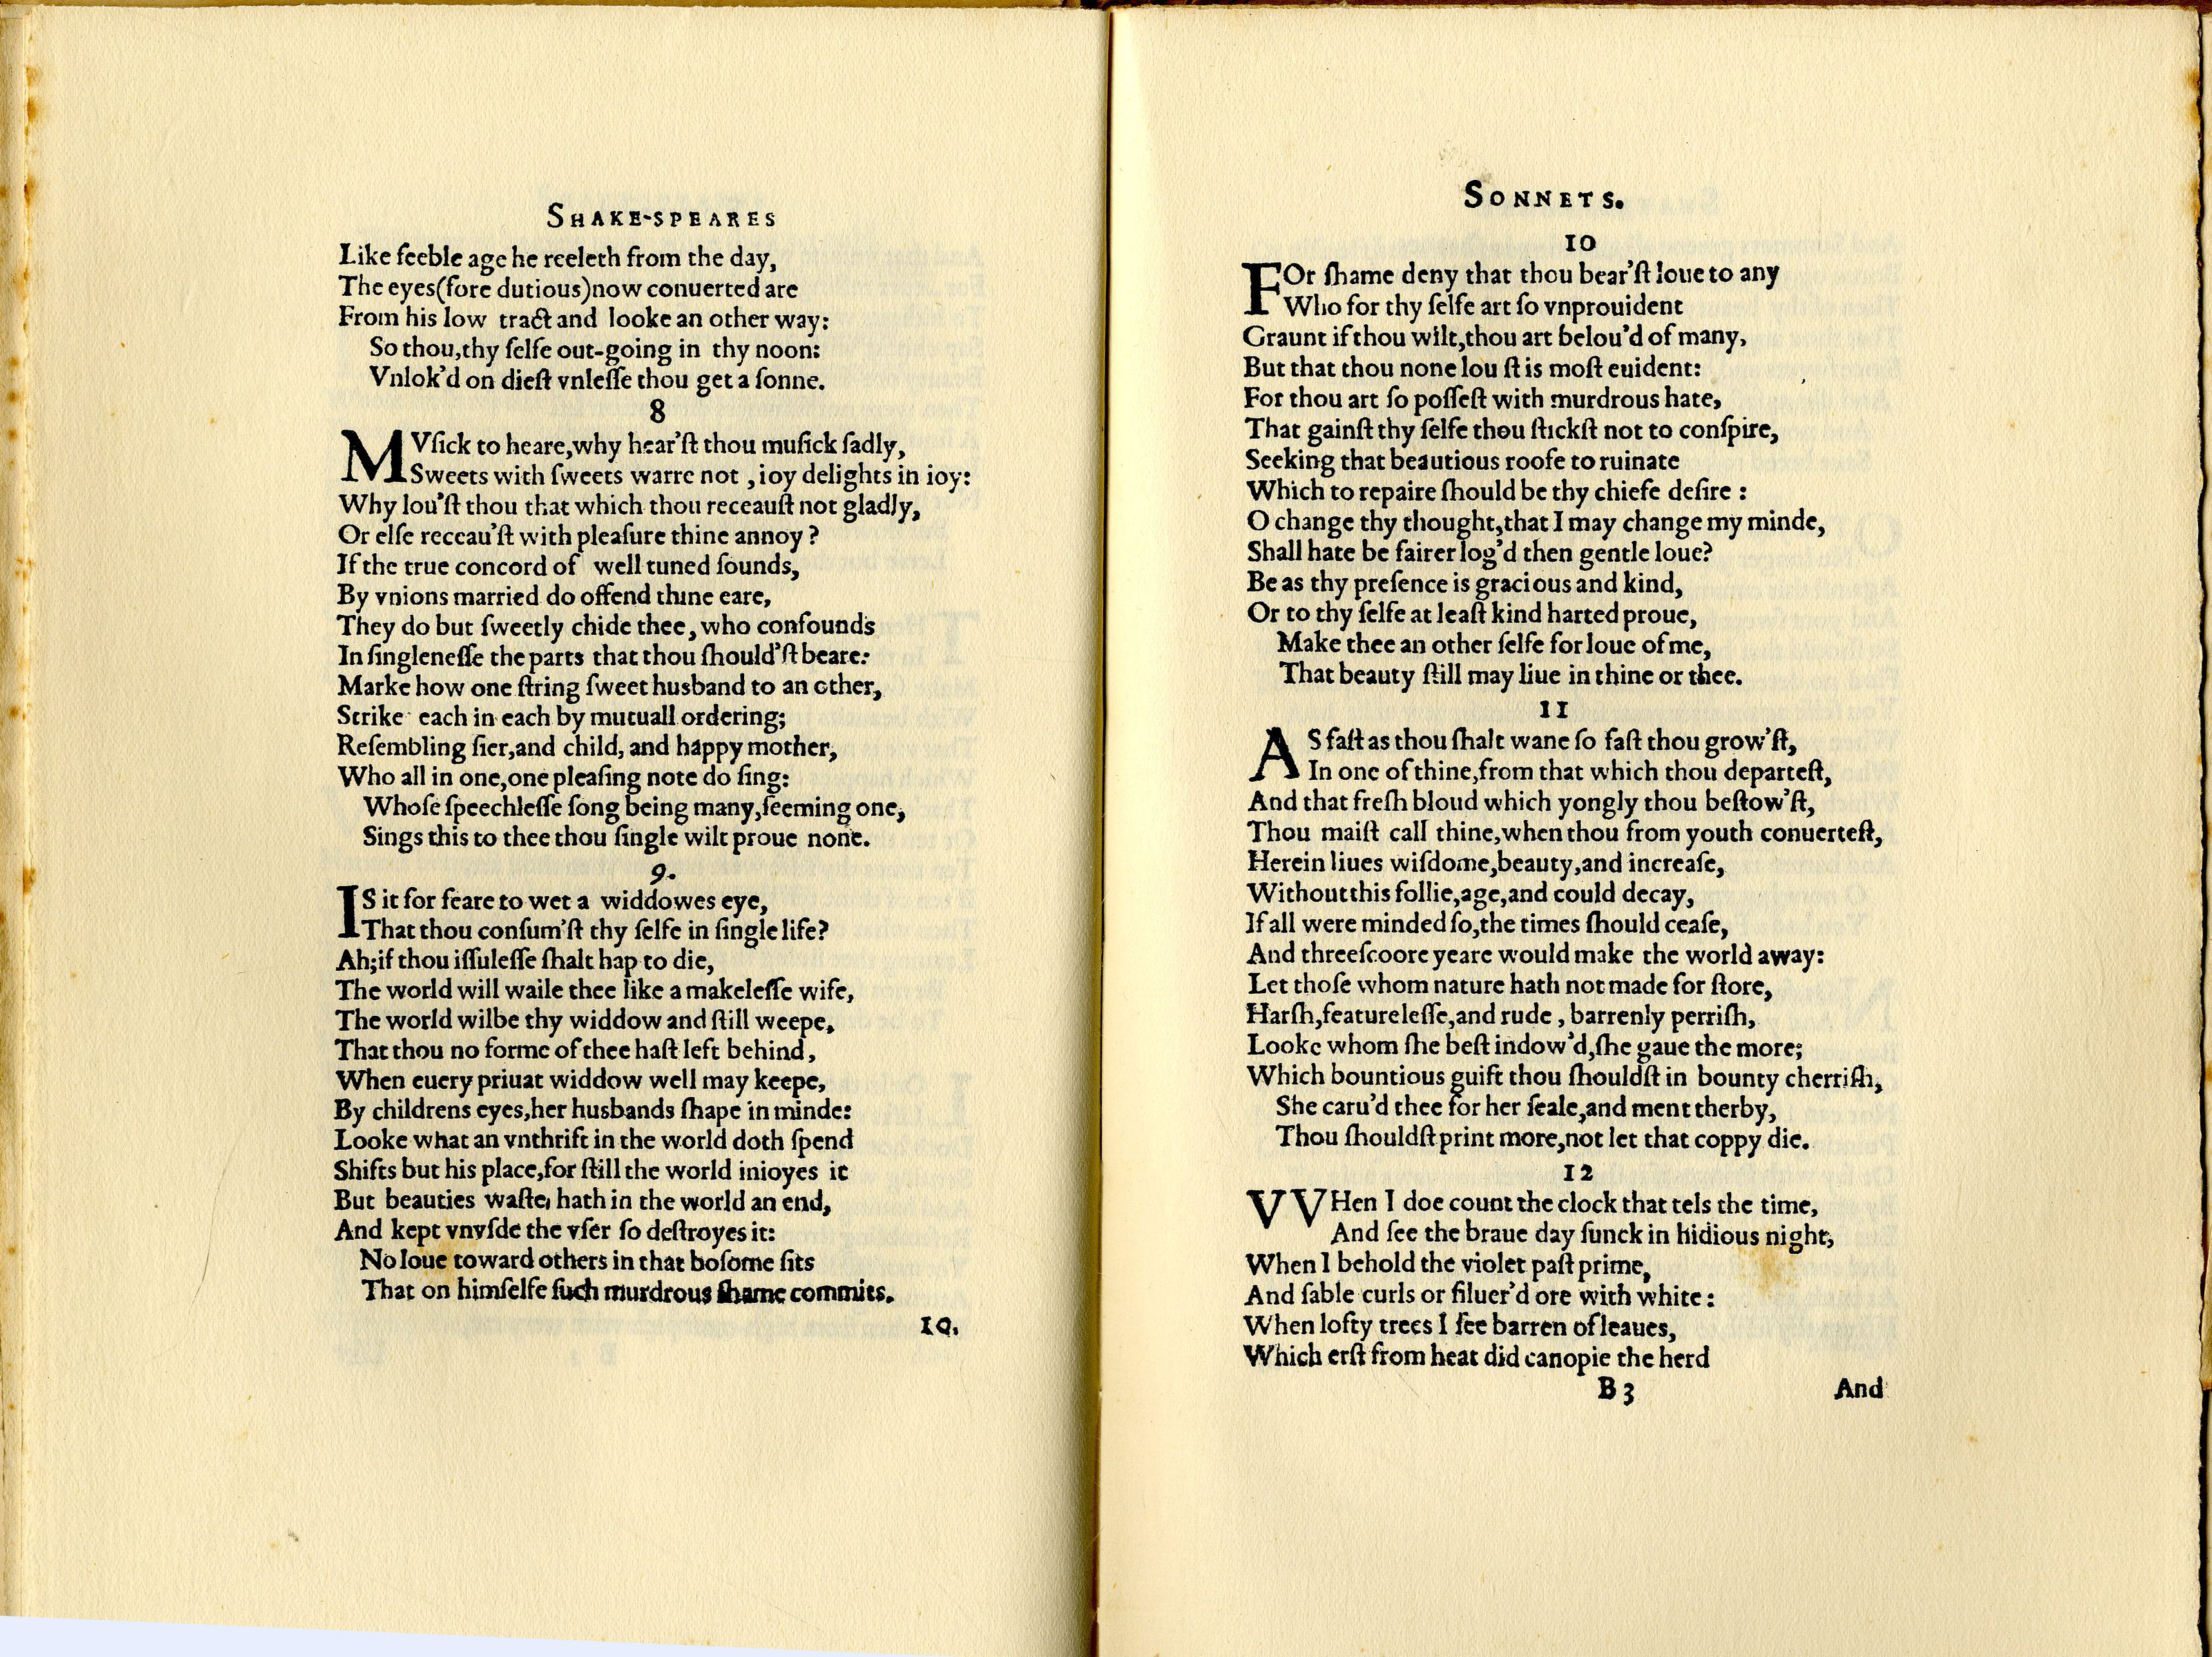 an analysis of shakespeares sonnet nr 73 published in 1609 The love object in astrophil and stella sonnet 20 and sonnet 130 by years and published in the 1609 analysis of shakespeare's sonnet 73.